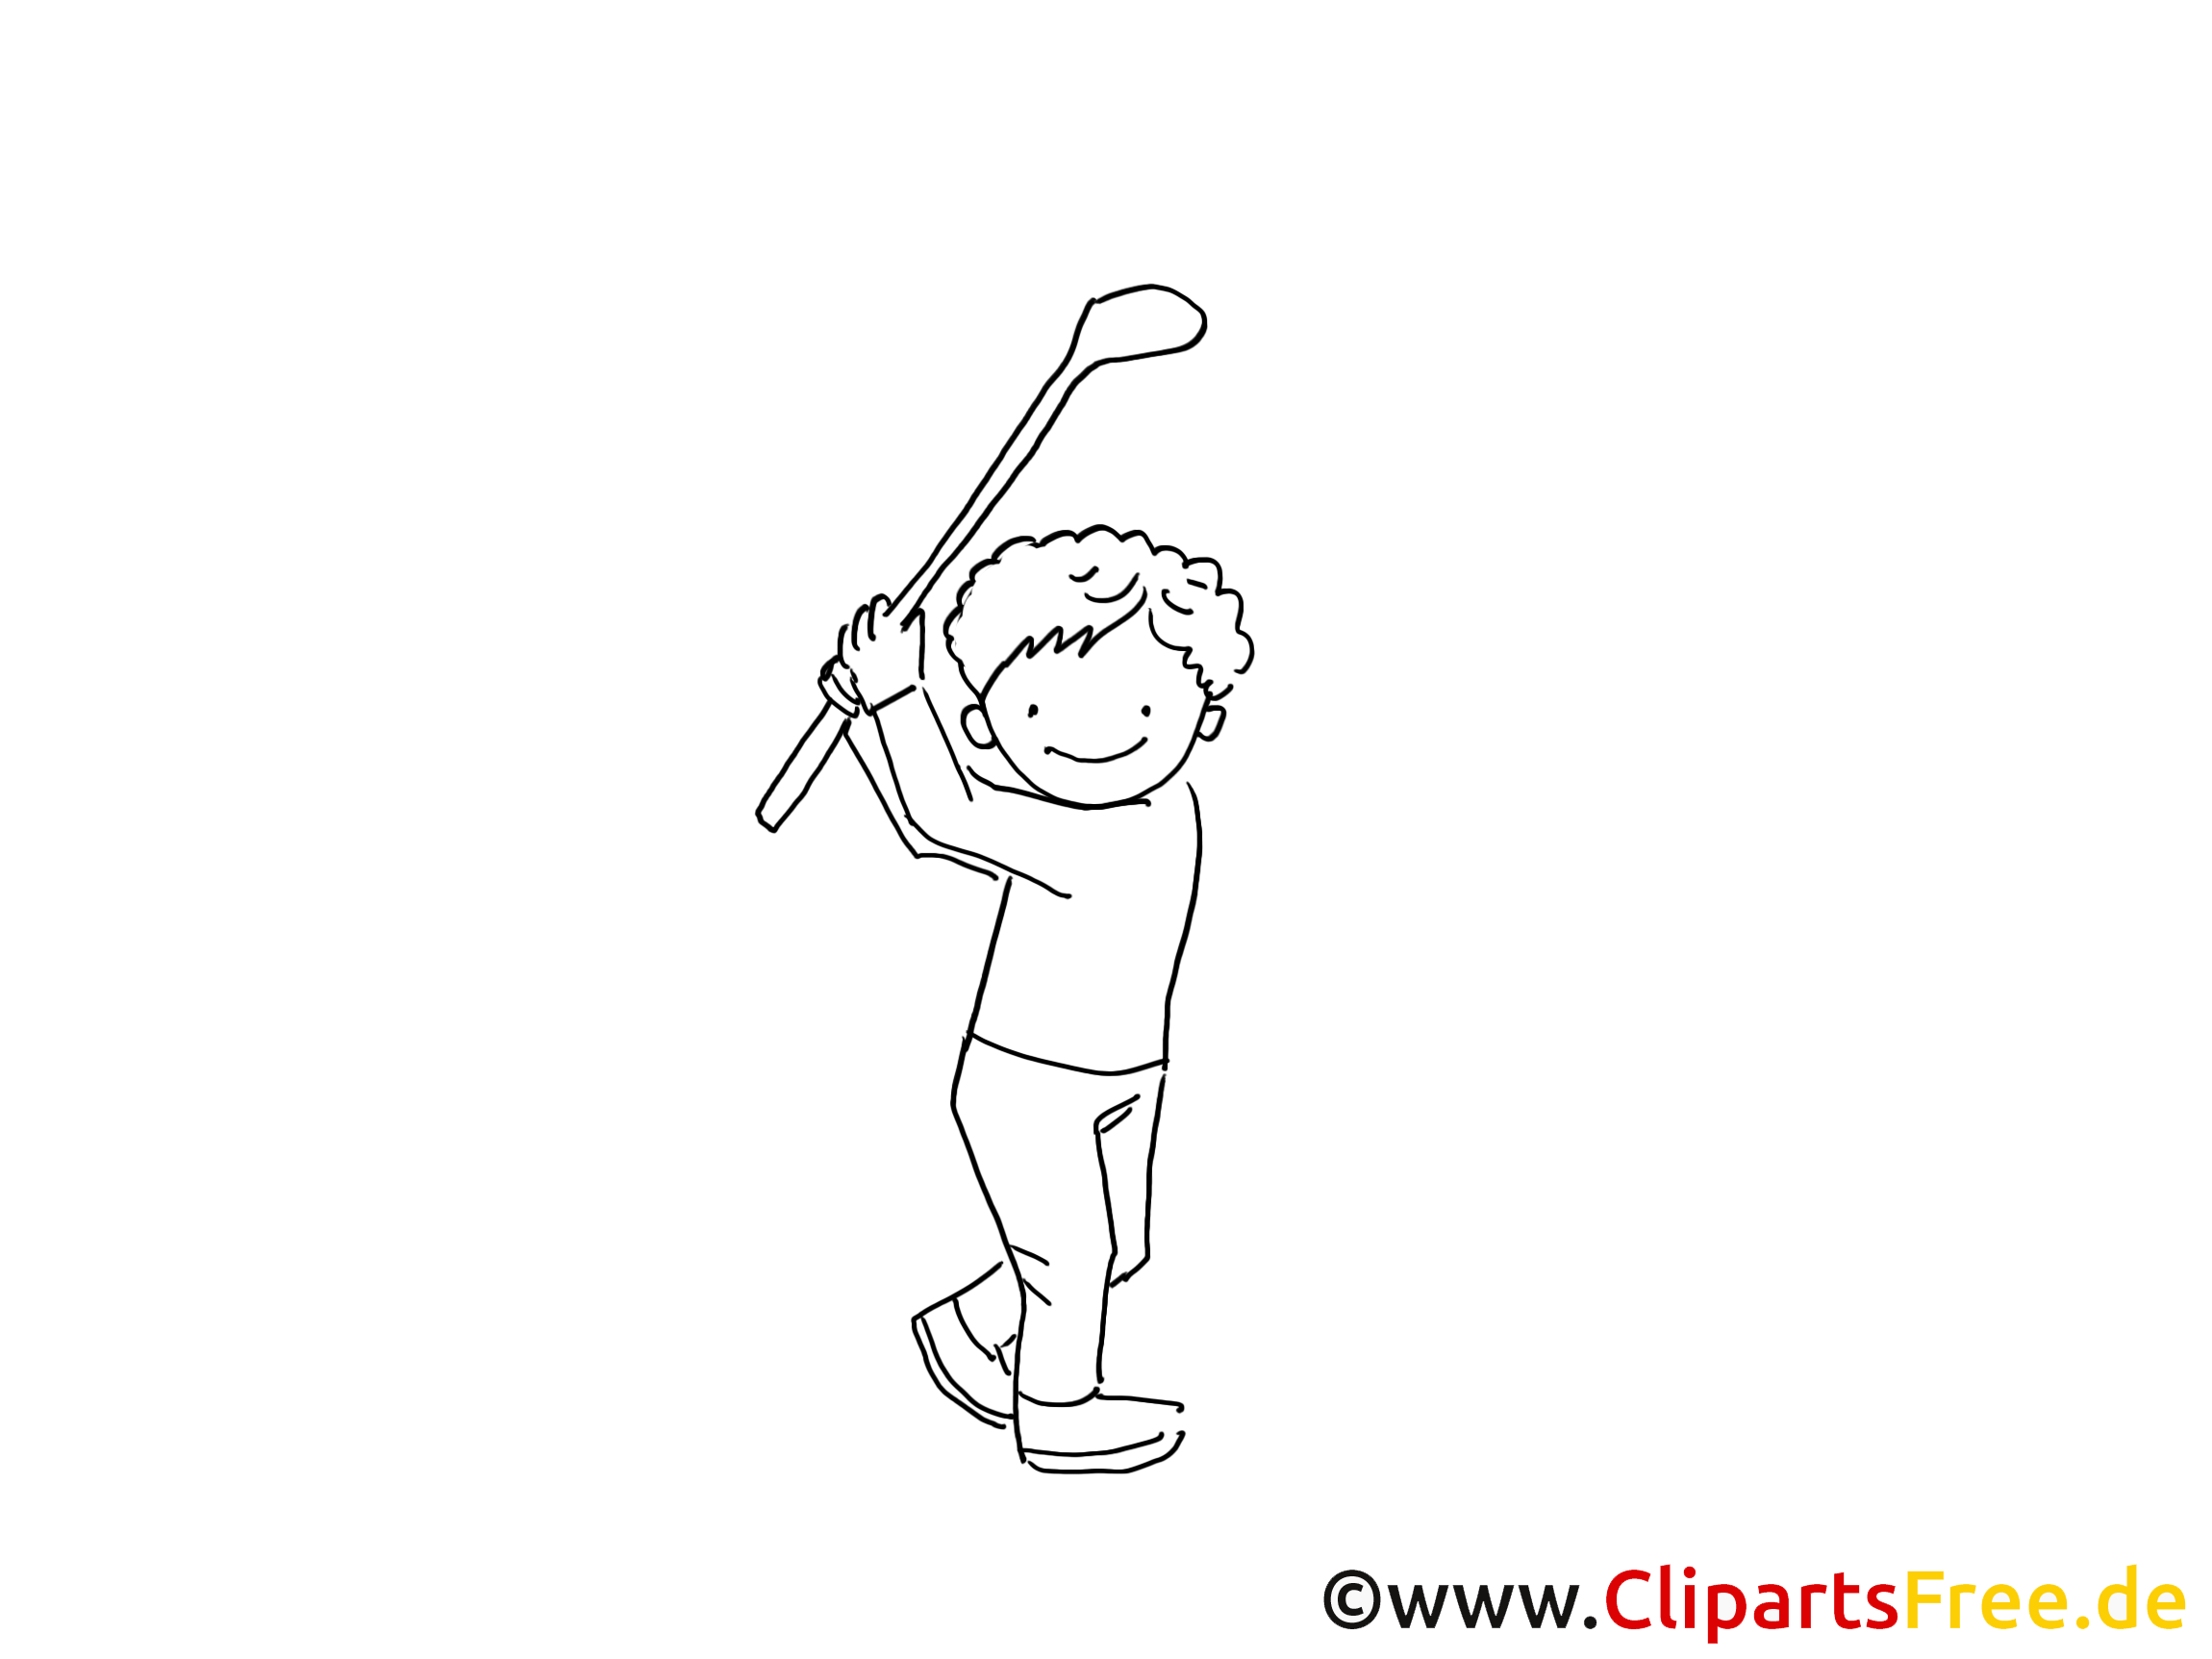 Golf coloriage - Balle de golf cliparts gratuits